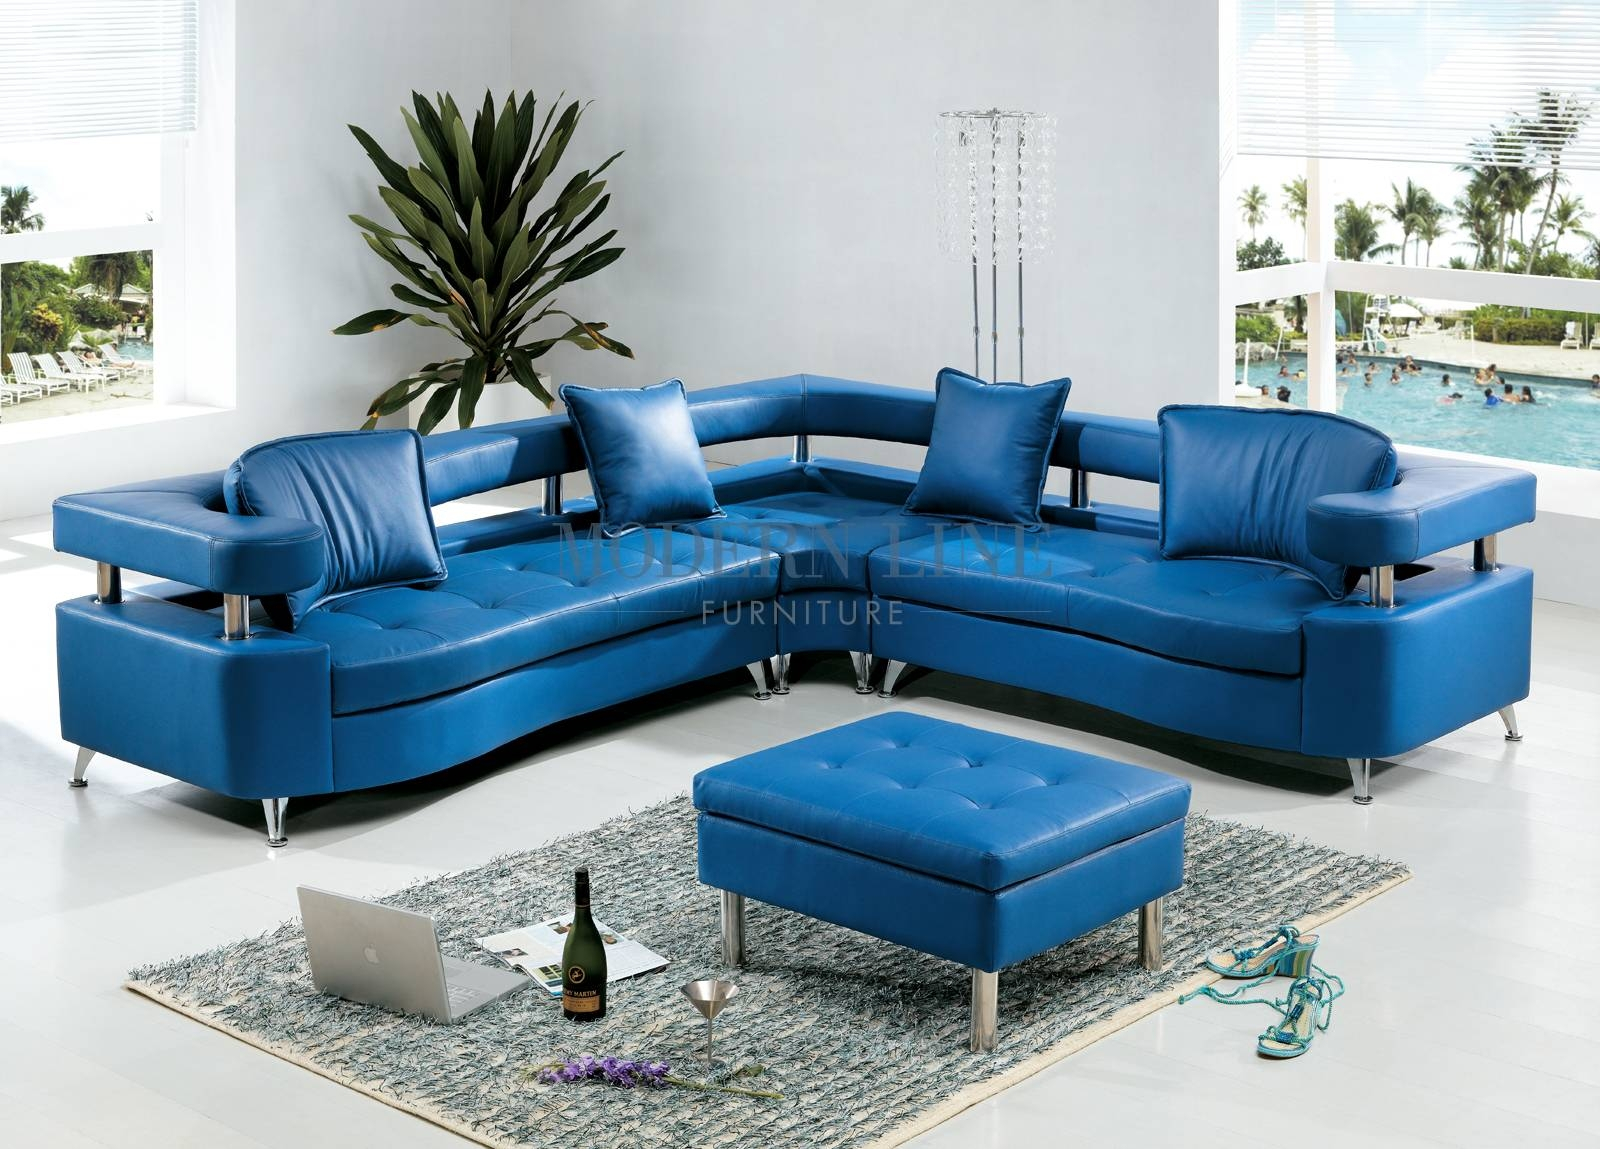 Modern Line Furniture - Commercial Furniture - Custom Made inside Custom Made Sectional Sofas (Image 17 of 30)